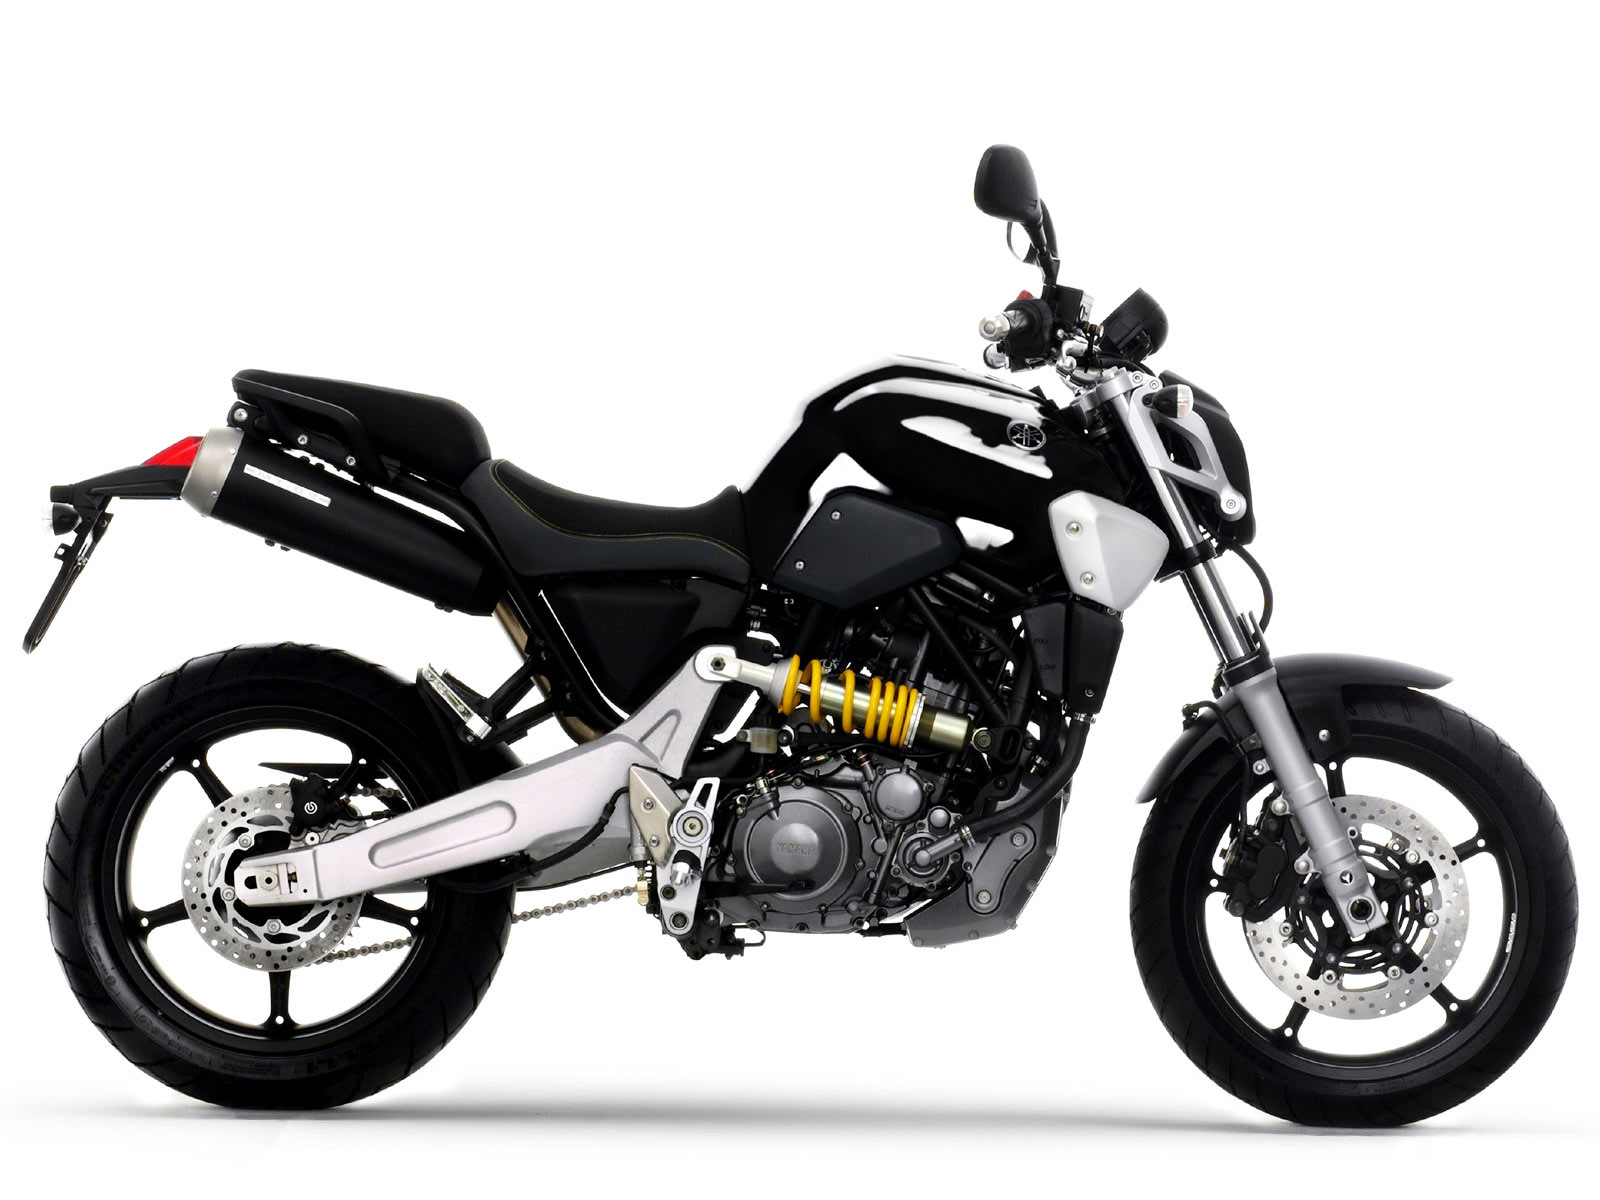 Yamaha MT-03 Price, Specs, Mileage, Top Speed, Images & Review